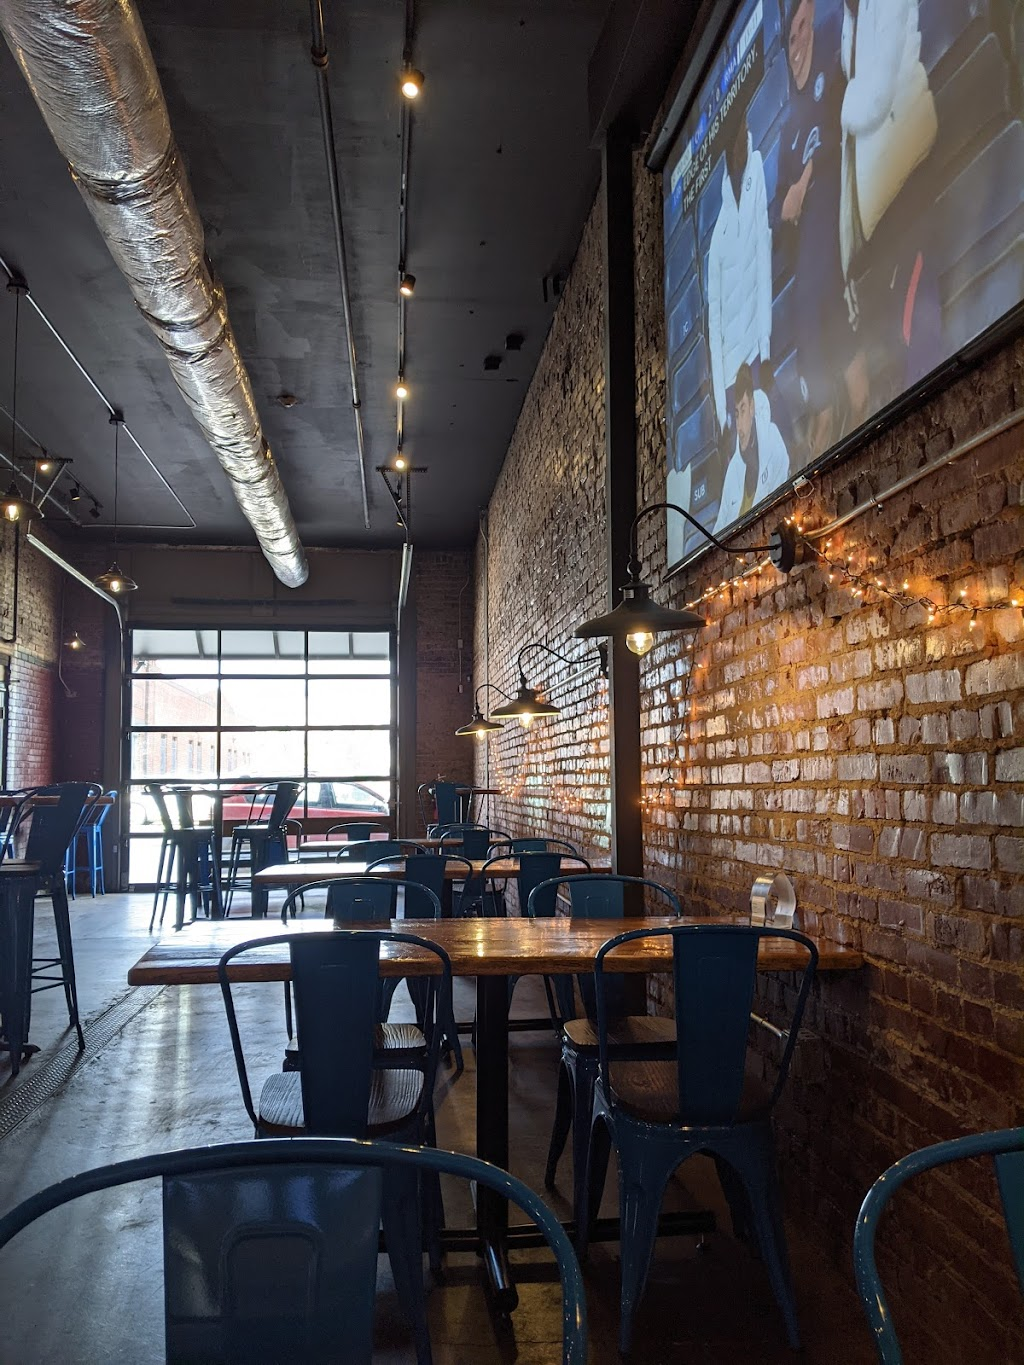 Fountainhead Taproom | restaurant | 1617 Rossville Ave, E Main St 1 Block off, Chattanooga, TN 37408, USA | 4235416355 OR +1 423-541-6355